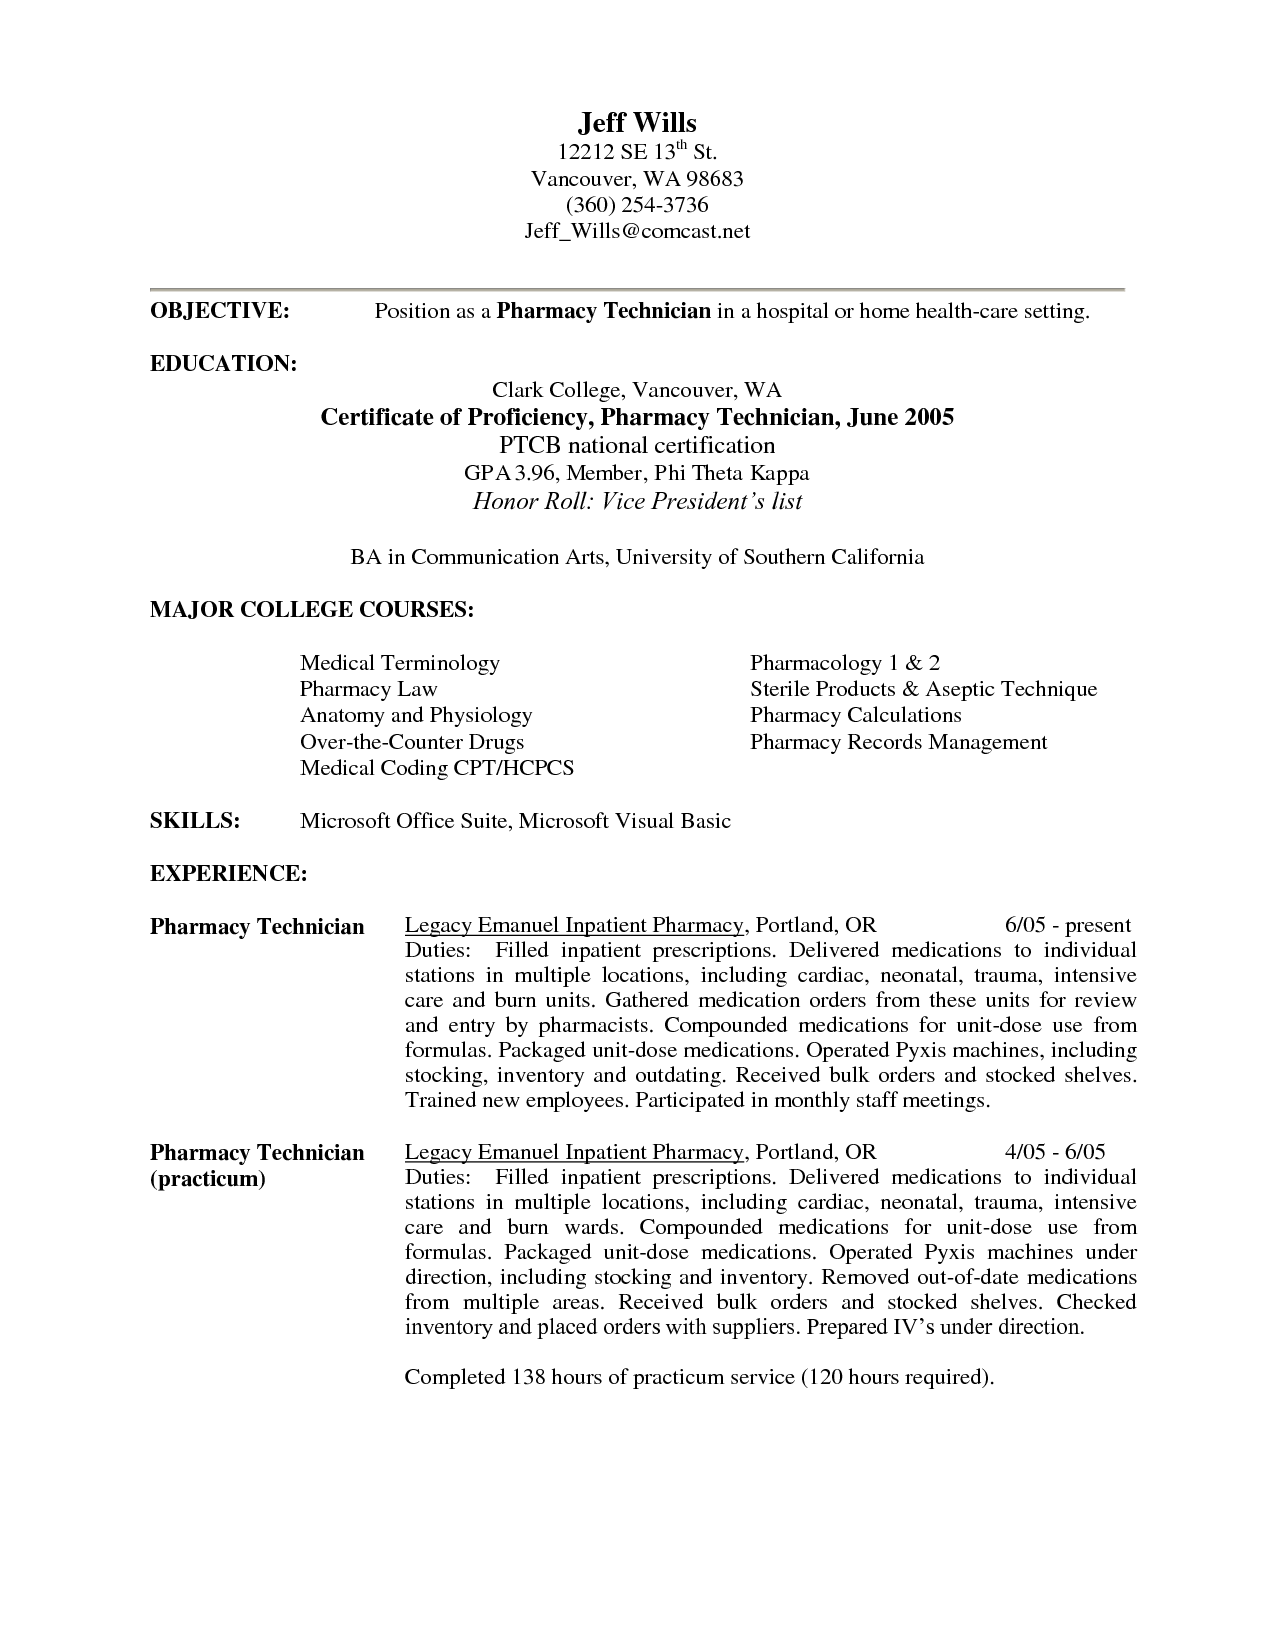 pharmacy technician objective resume samples - Objective For Pharmacy Technician Resume